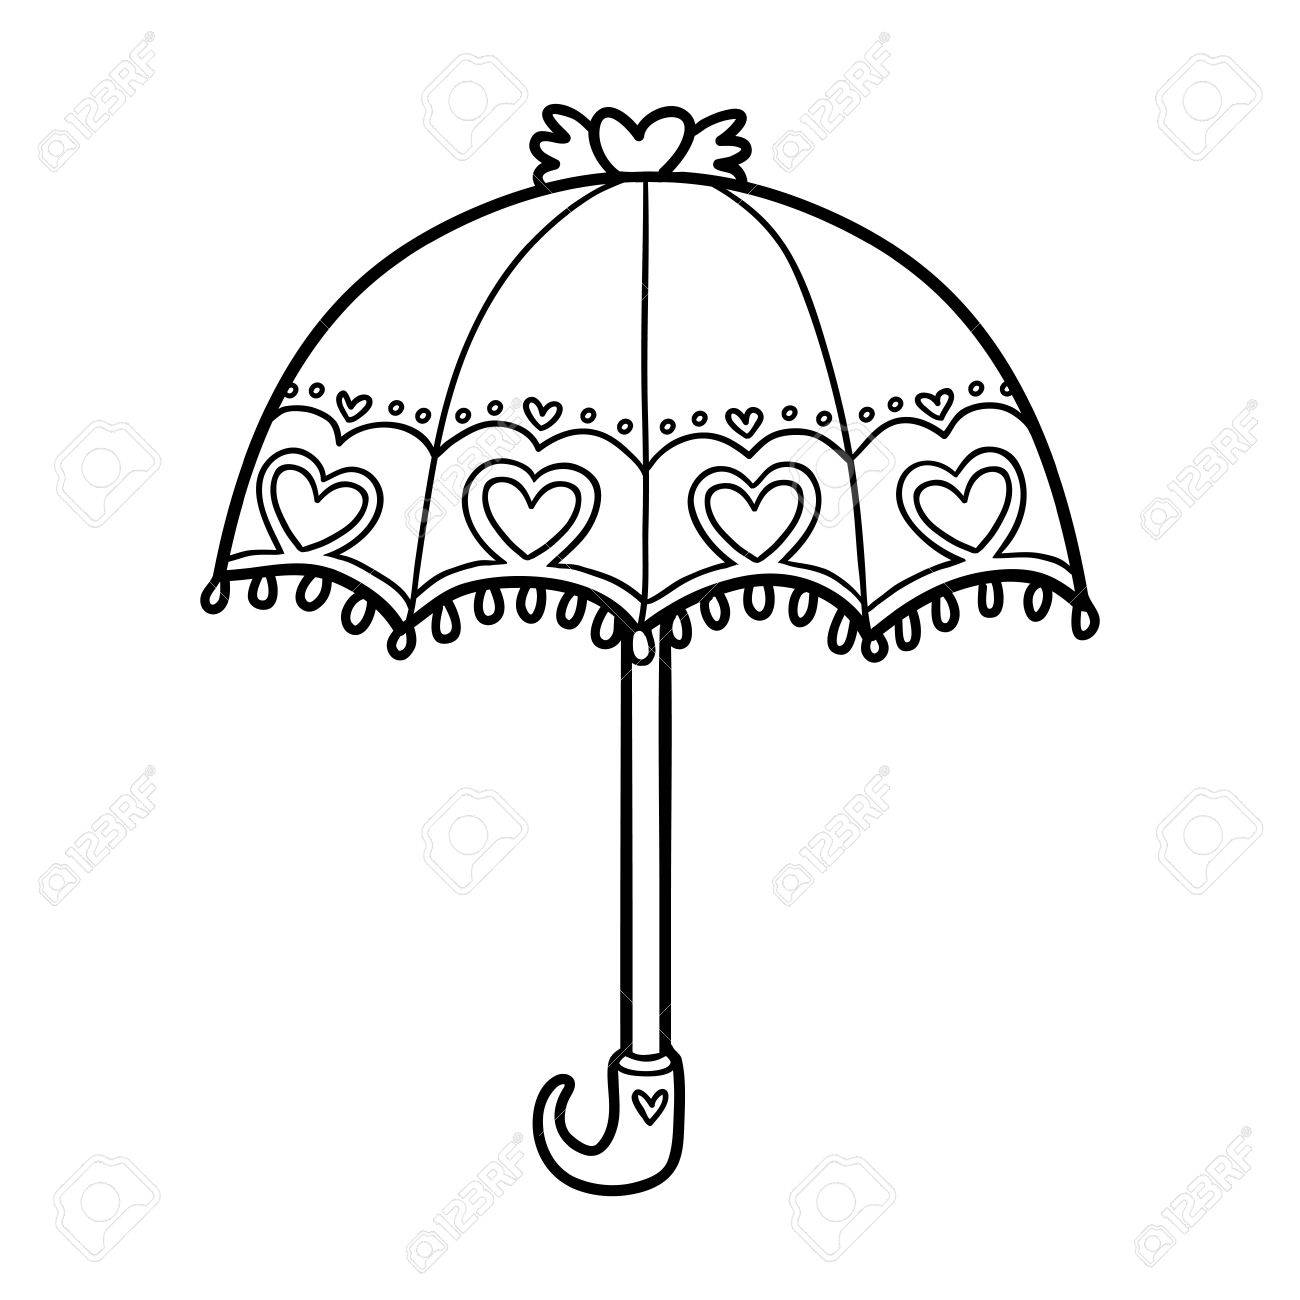 Coloring Book For Children Cute Umbrella